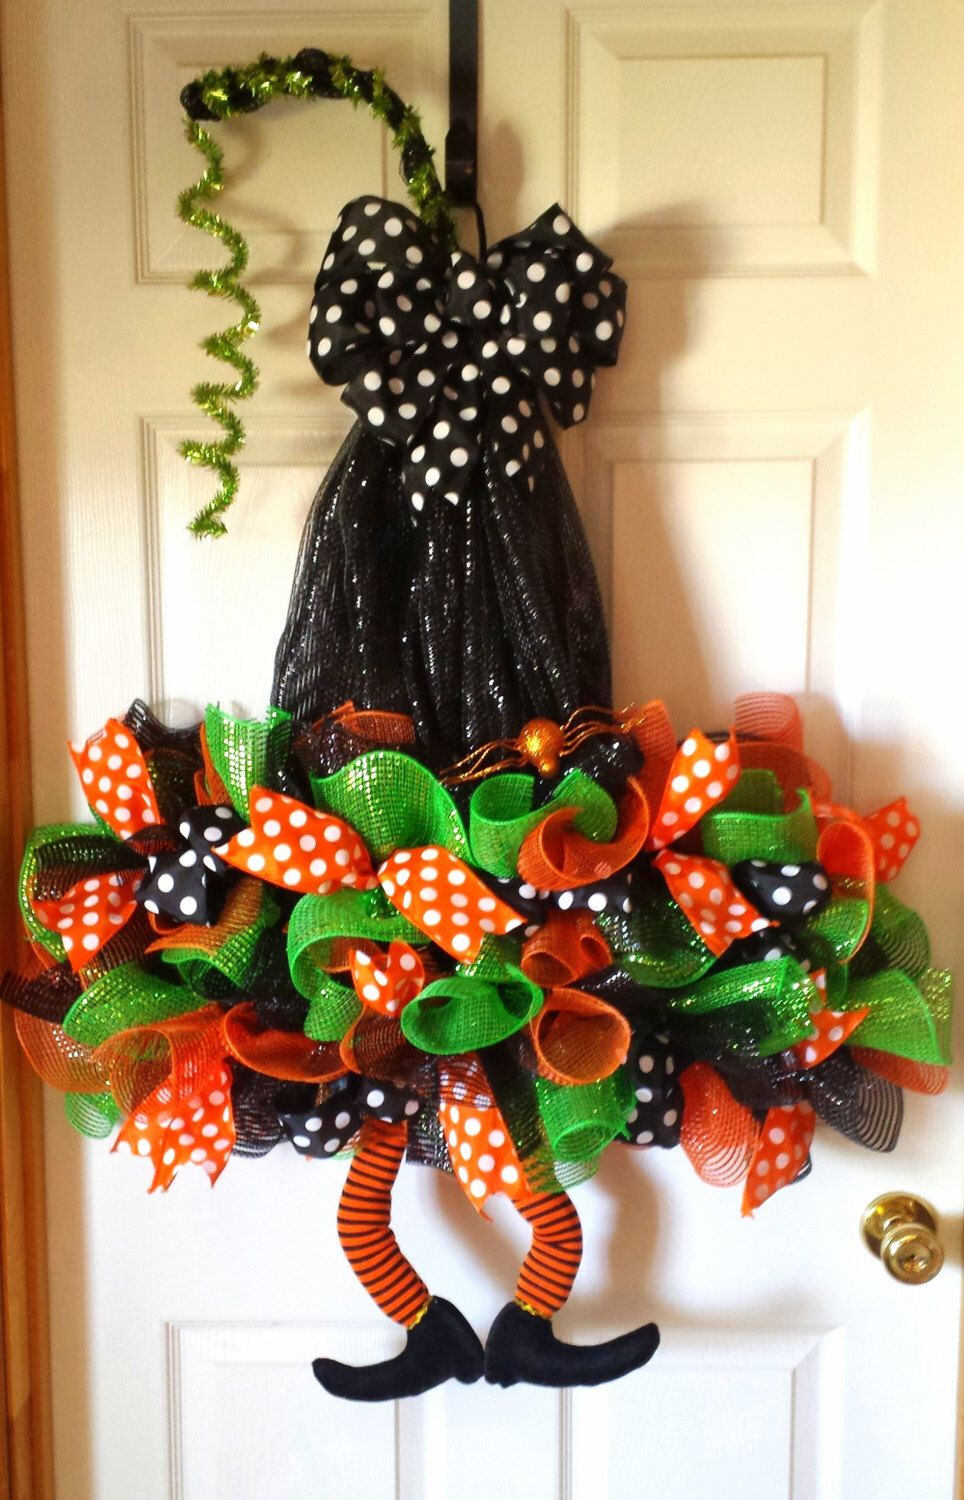 Whimsical, Halloween Witch Hat Wreath with Legs by AnySeasonAnyReason on Etsy https://www.etsy.com/listing/243569988/whimsical-halloween-witch-hat-wreath